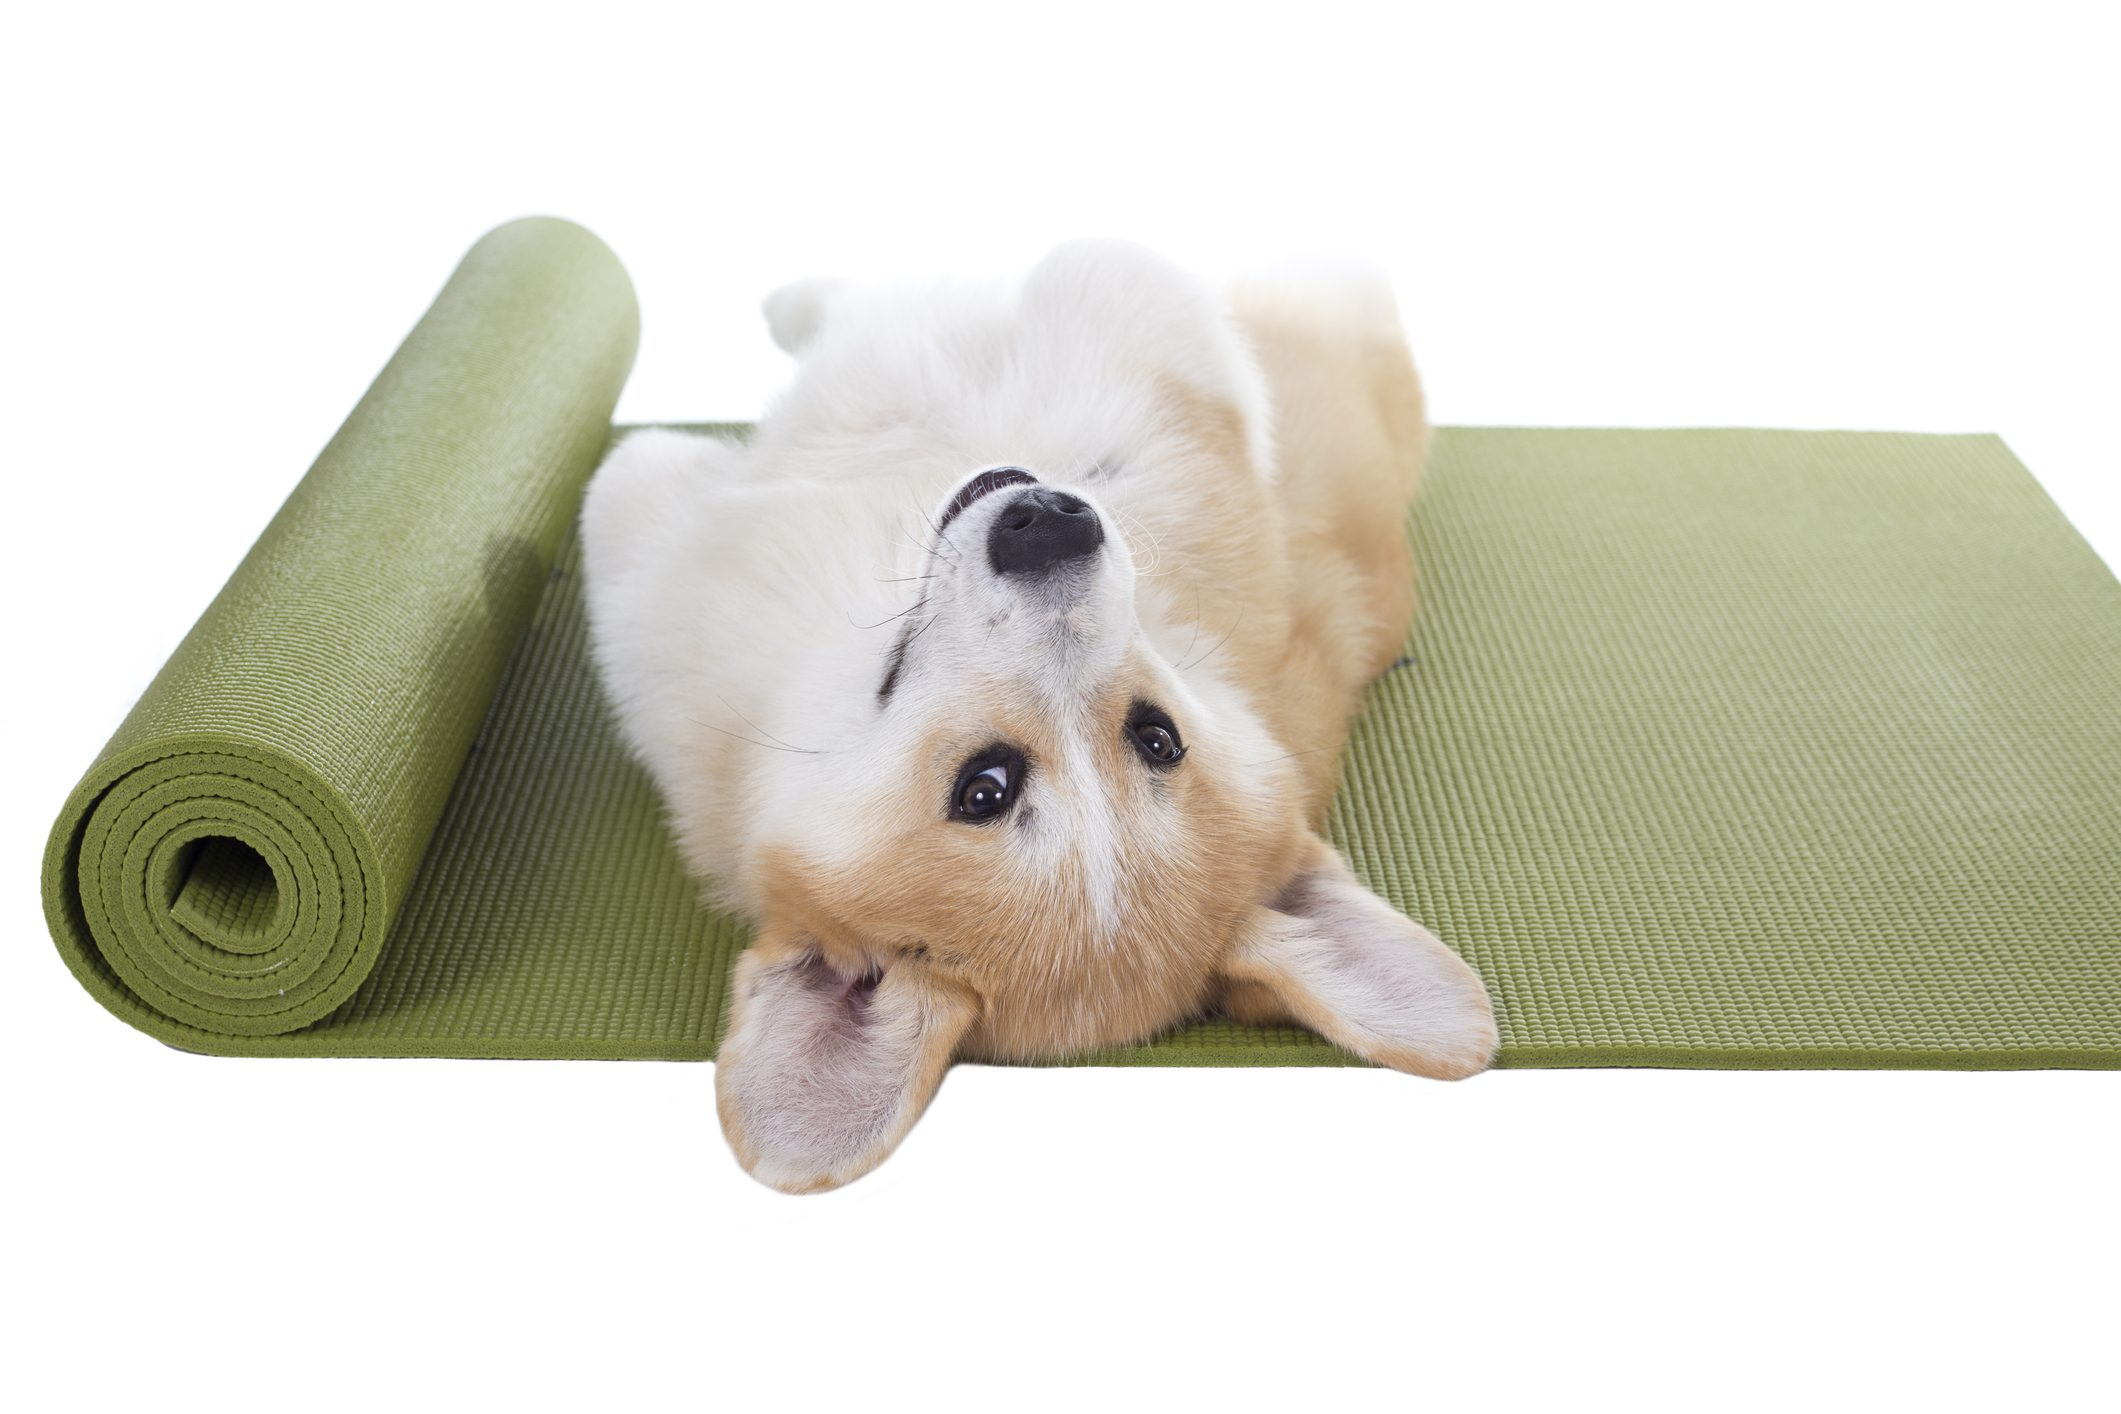 Corgi lying on a yoga mat